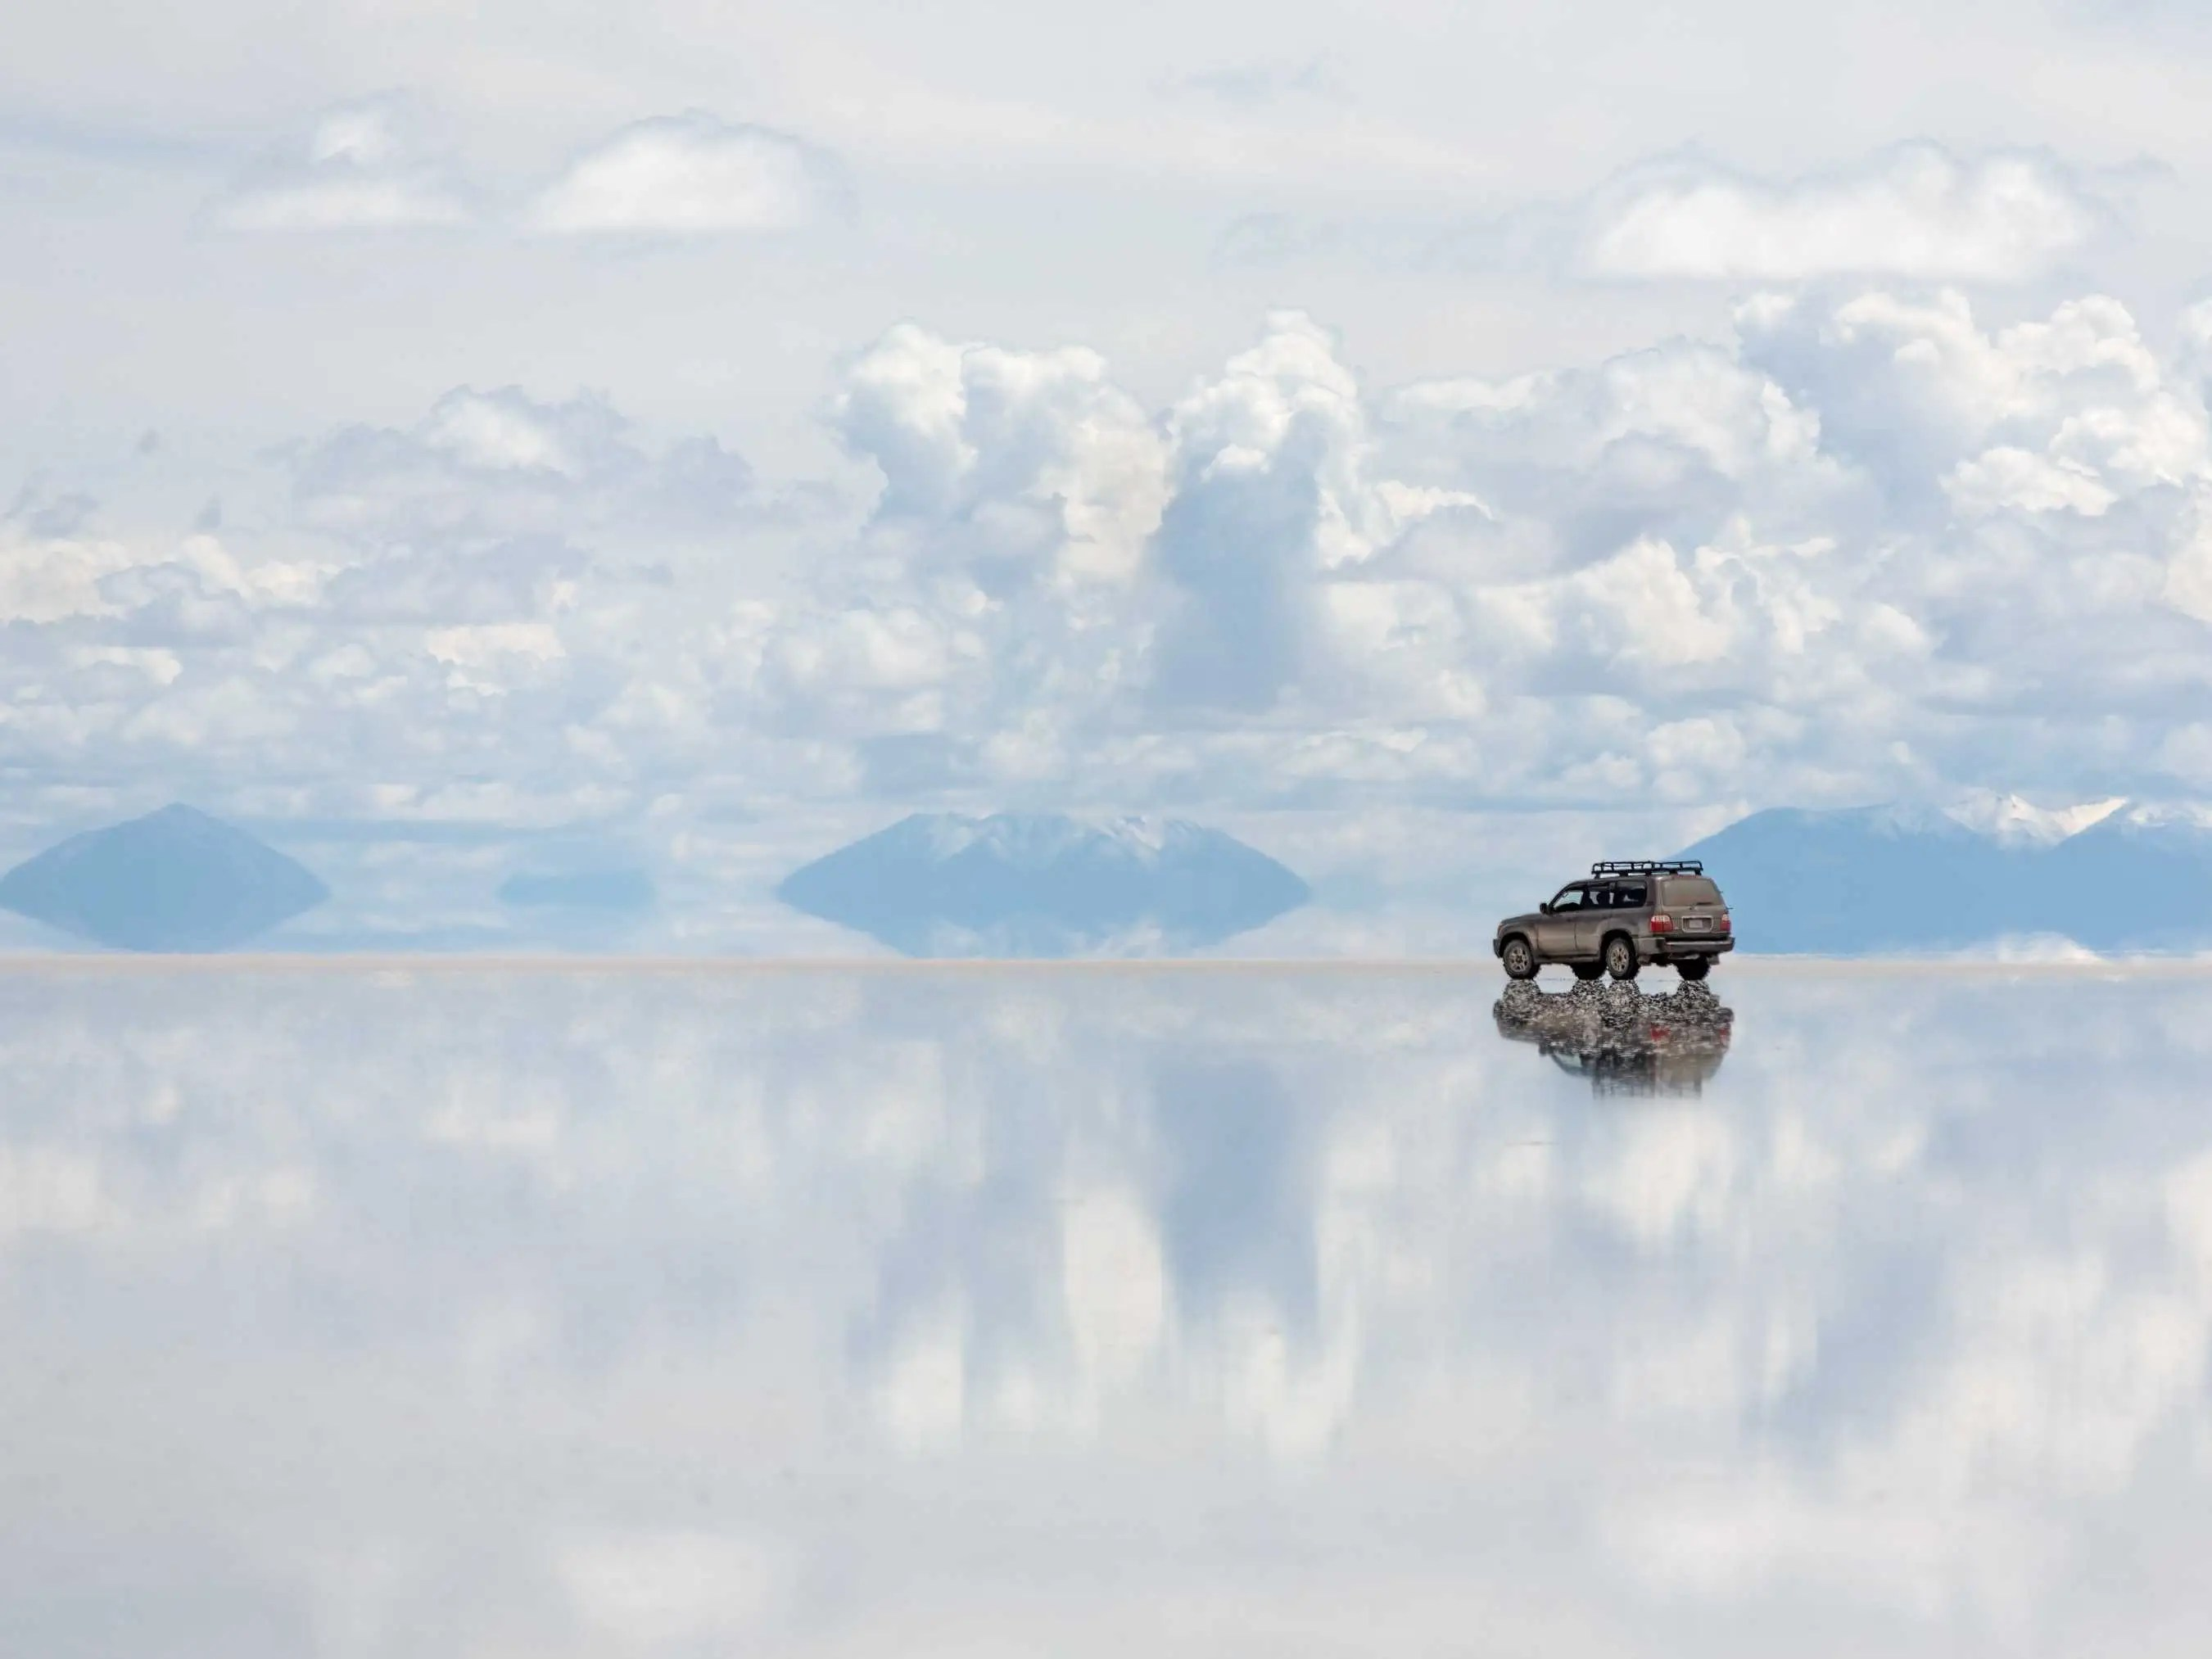 Four wheel drive across Bolivia's Salar de Uyuni, the largest salt flat in the world.